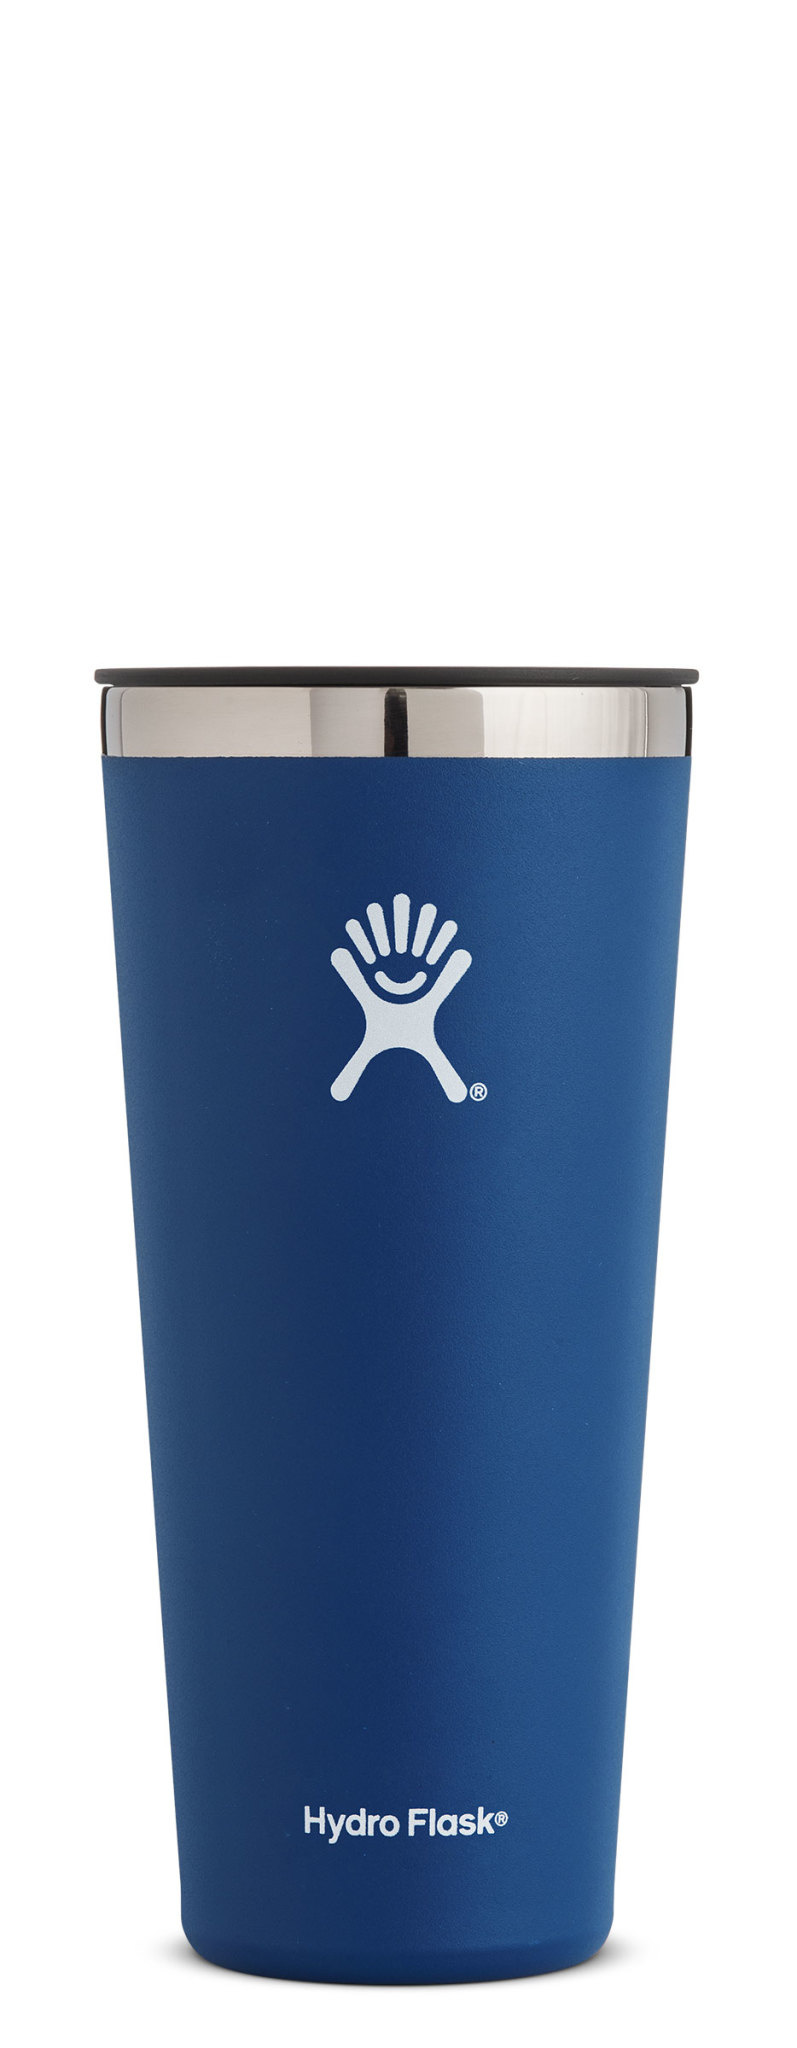 Hydro Flask 32oz Tumbler-5